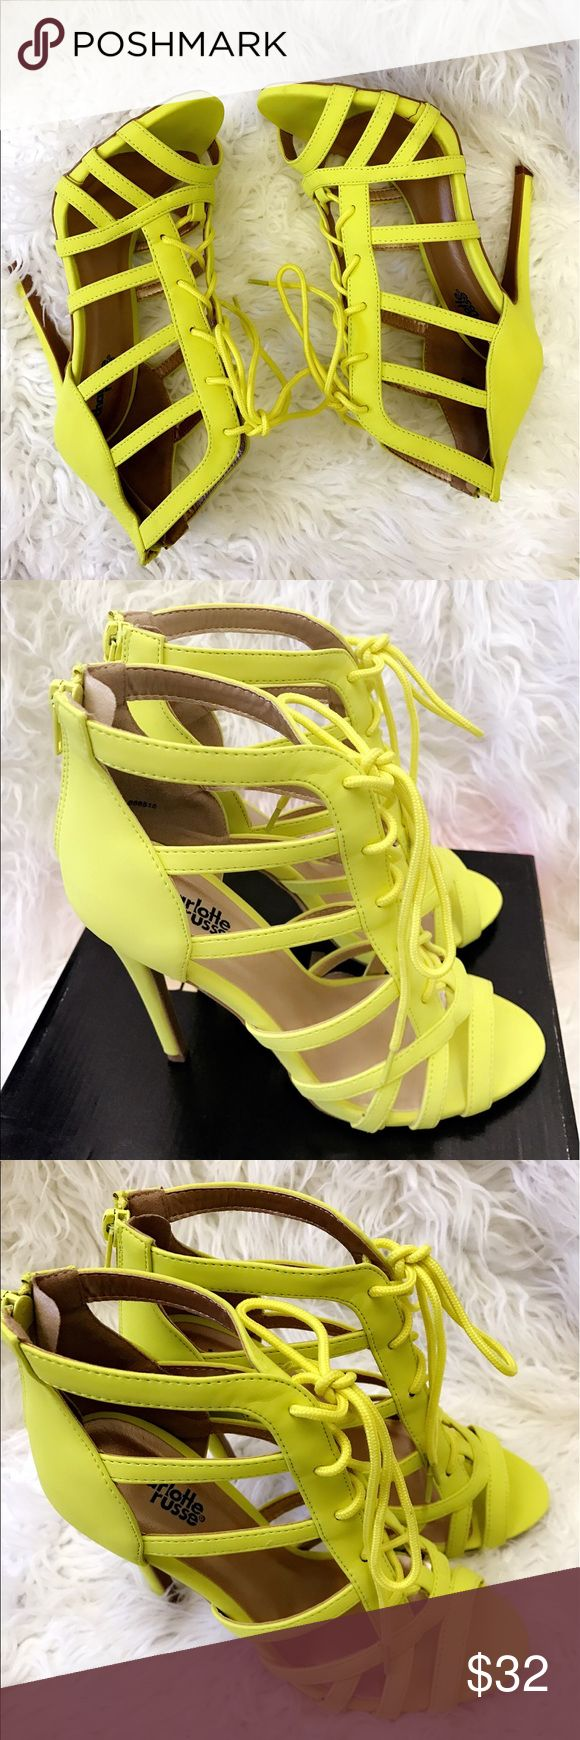 Charlotte Russe glee neon yellow lace heels size 8 Brand new in box Charlotte Russe glee neon yellow from lace heels size 8 Charlotte Russe Shoes Heels